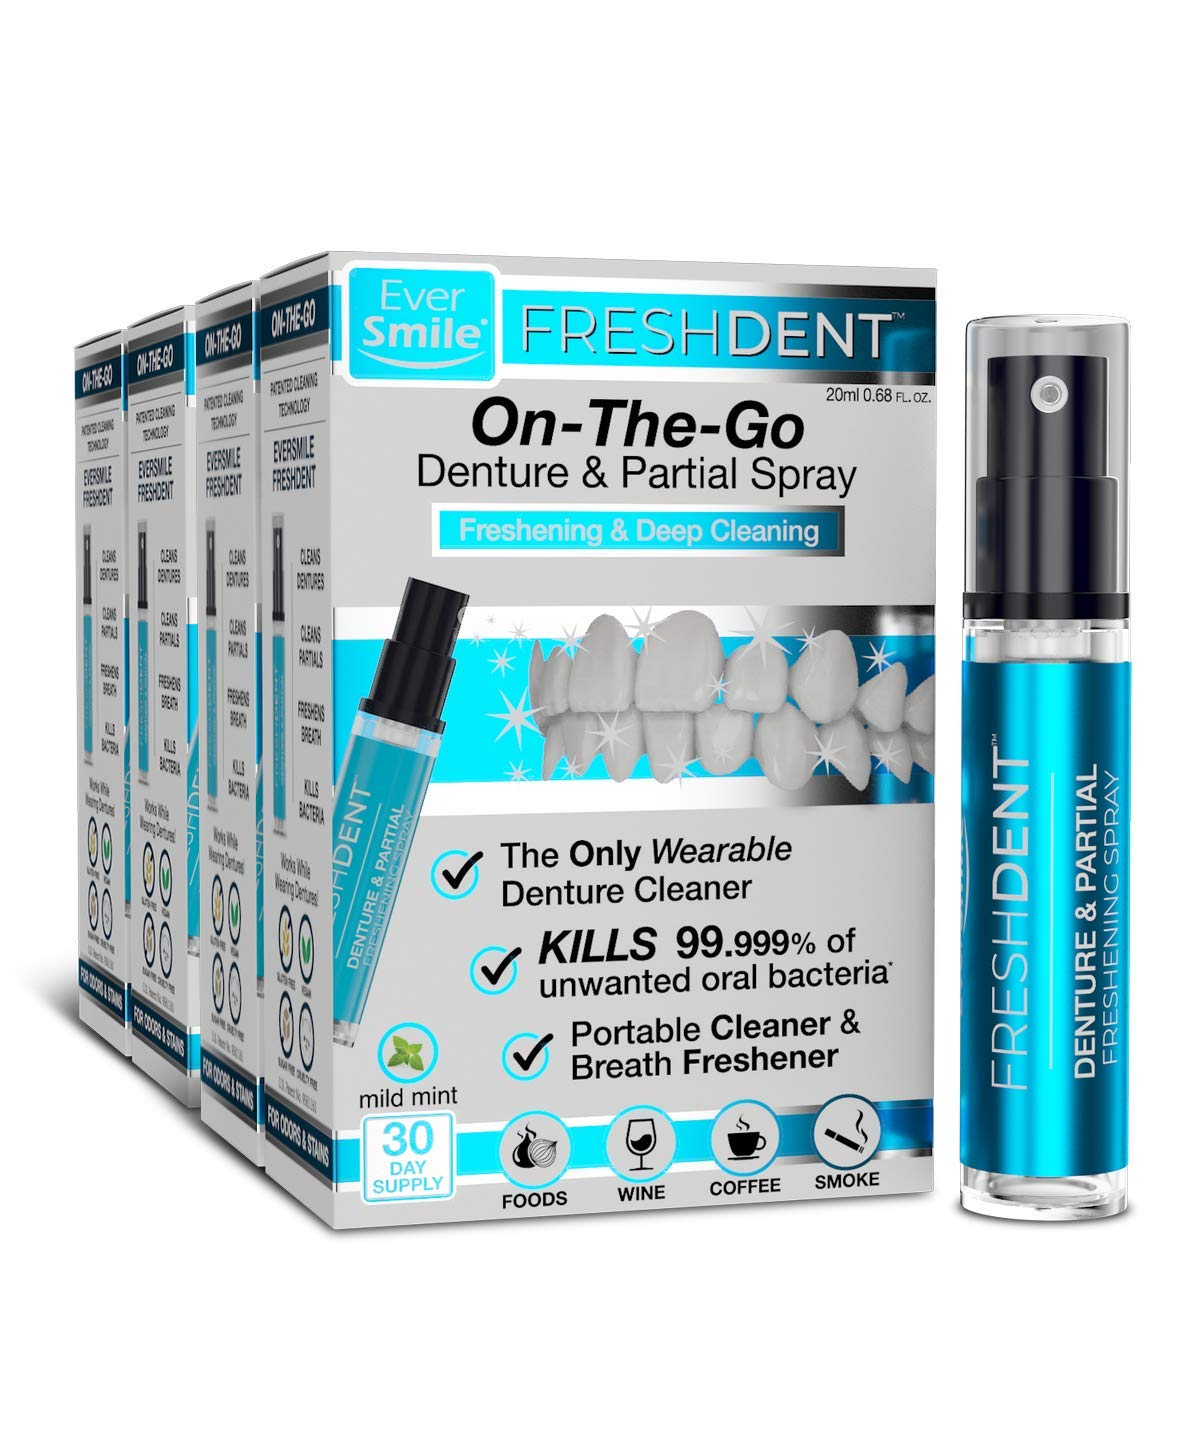 FreshDent Denture & Partial Cleaner - On The Go Dental Cleaning & Teeth Whitening Spray. Kills Bacteria & Freshens Bad Breath Mint Flavored (4pk) by EverSmile